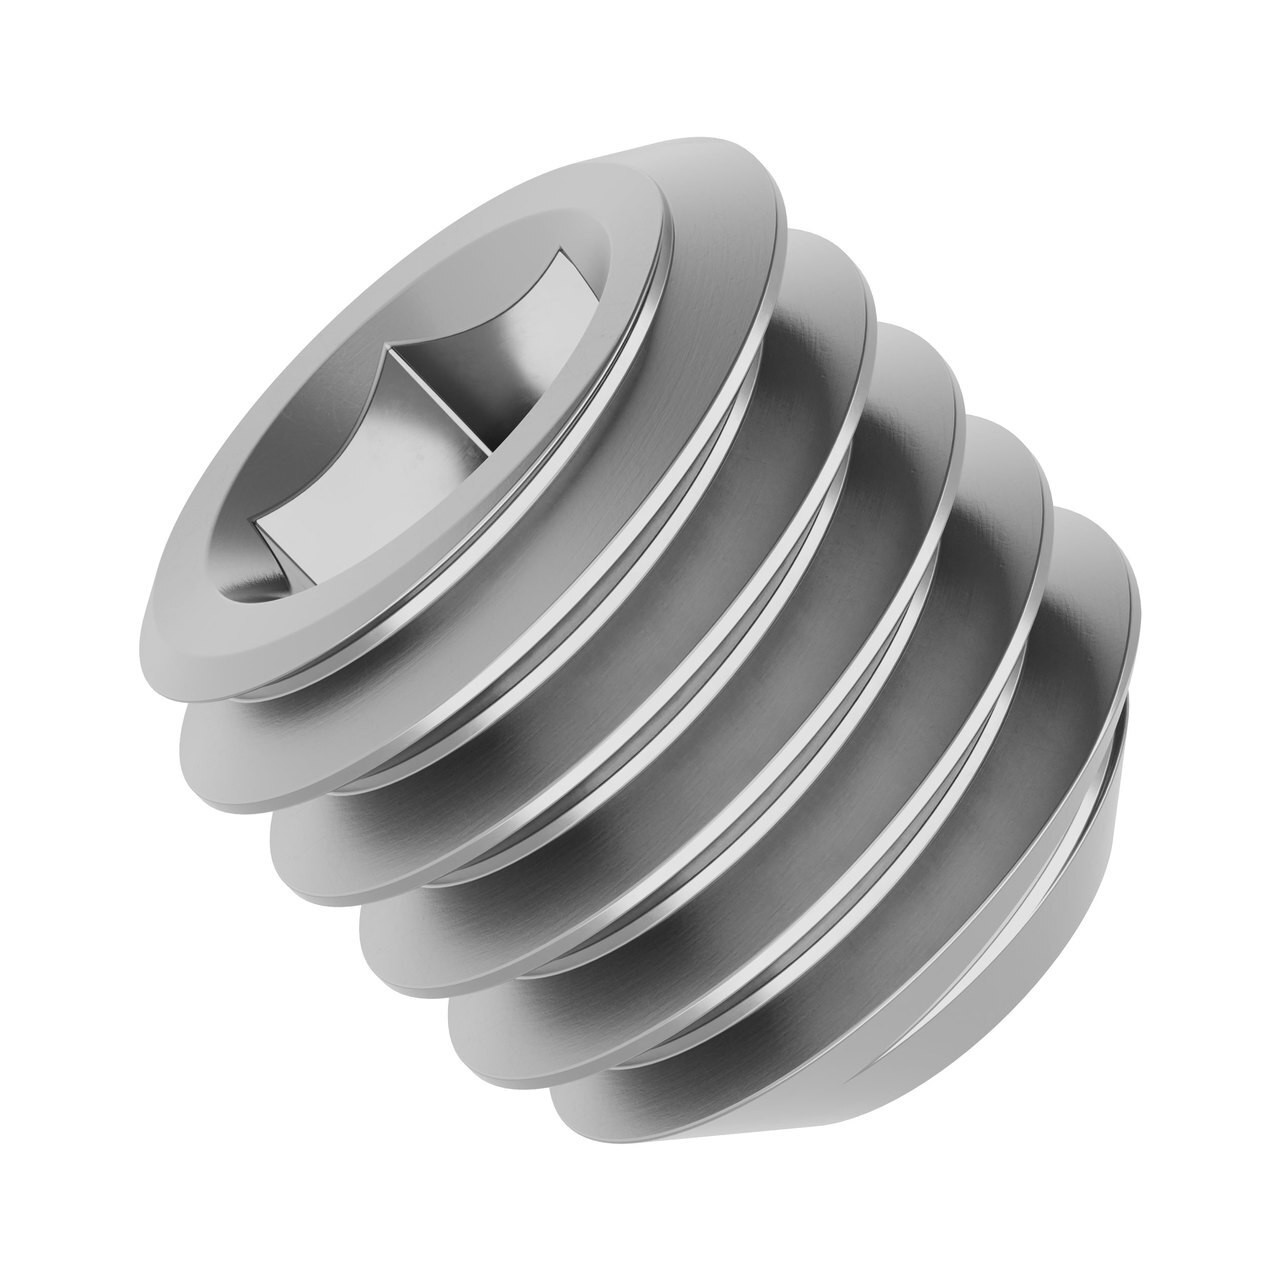 """10-32 Stainless Steel Cup-Point Set-Screw (0.1875"""" Length) - 6 Pack"""